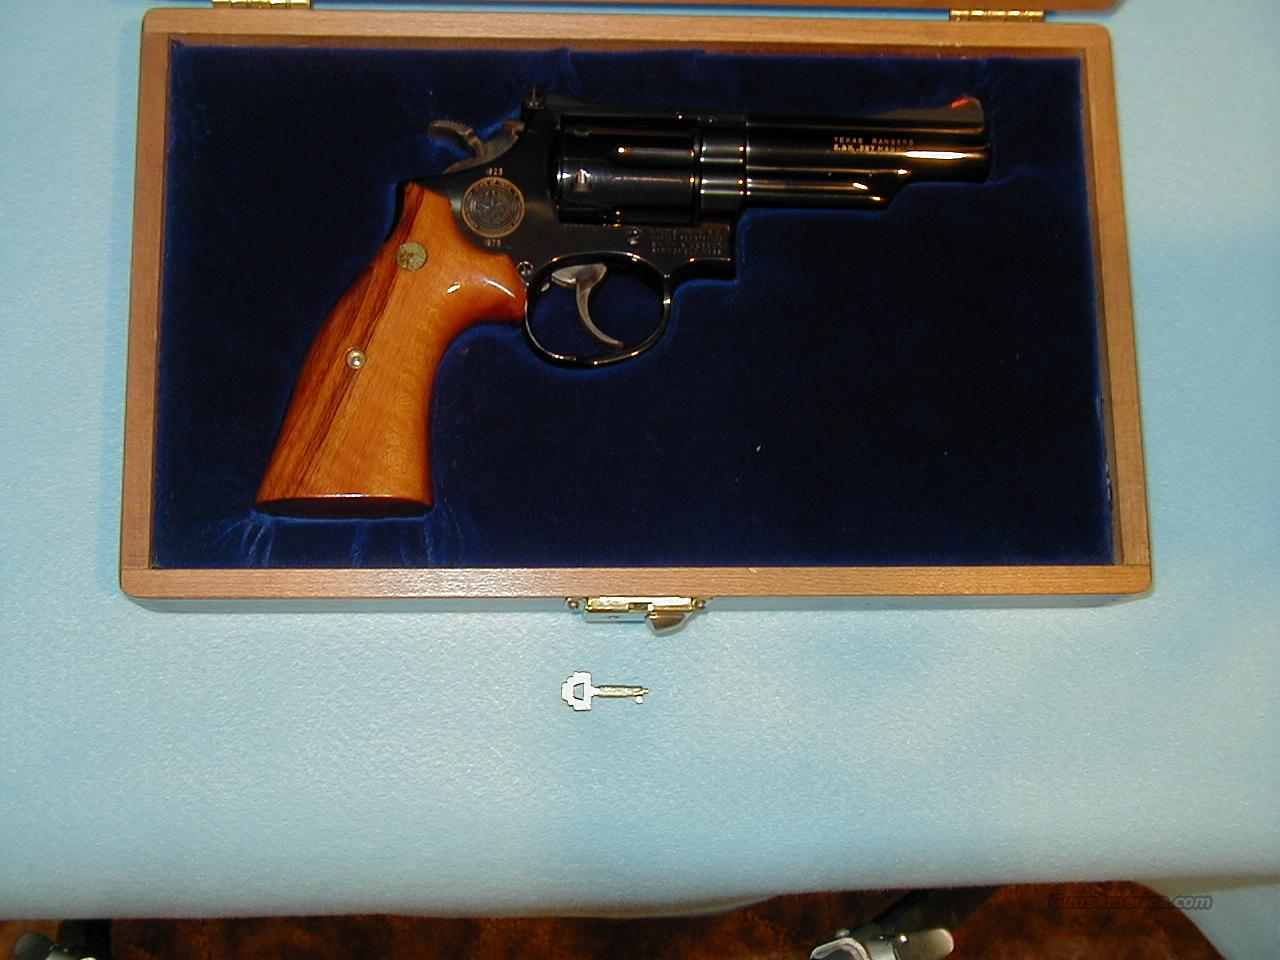 Texas Ranger Commemorative  Guns > Pistols > Smith & Wesson Revolvers > Full Frame Revolver